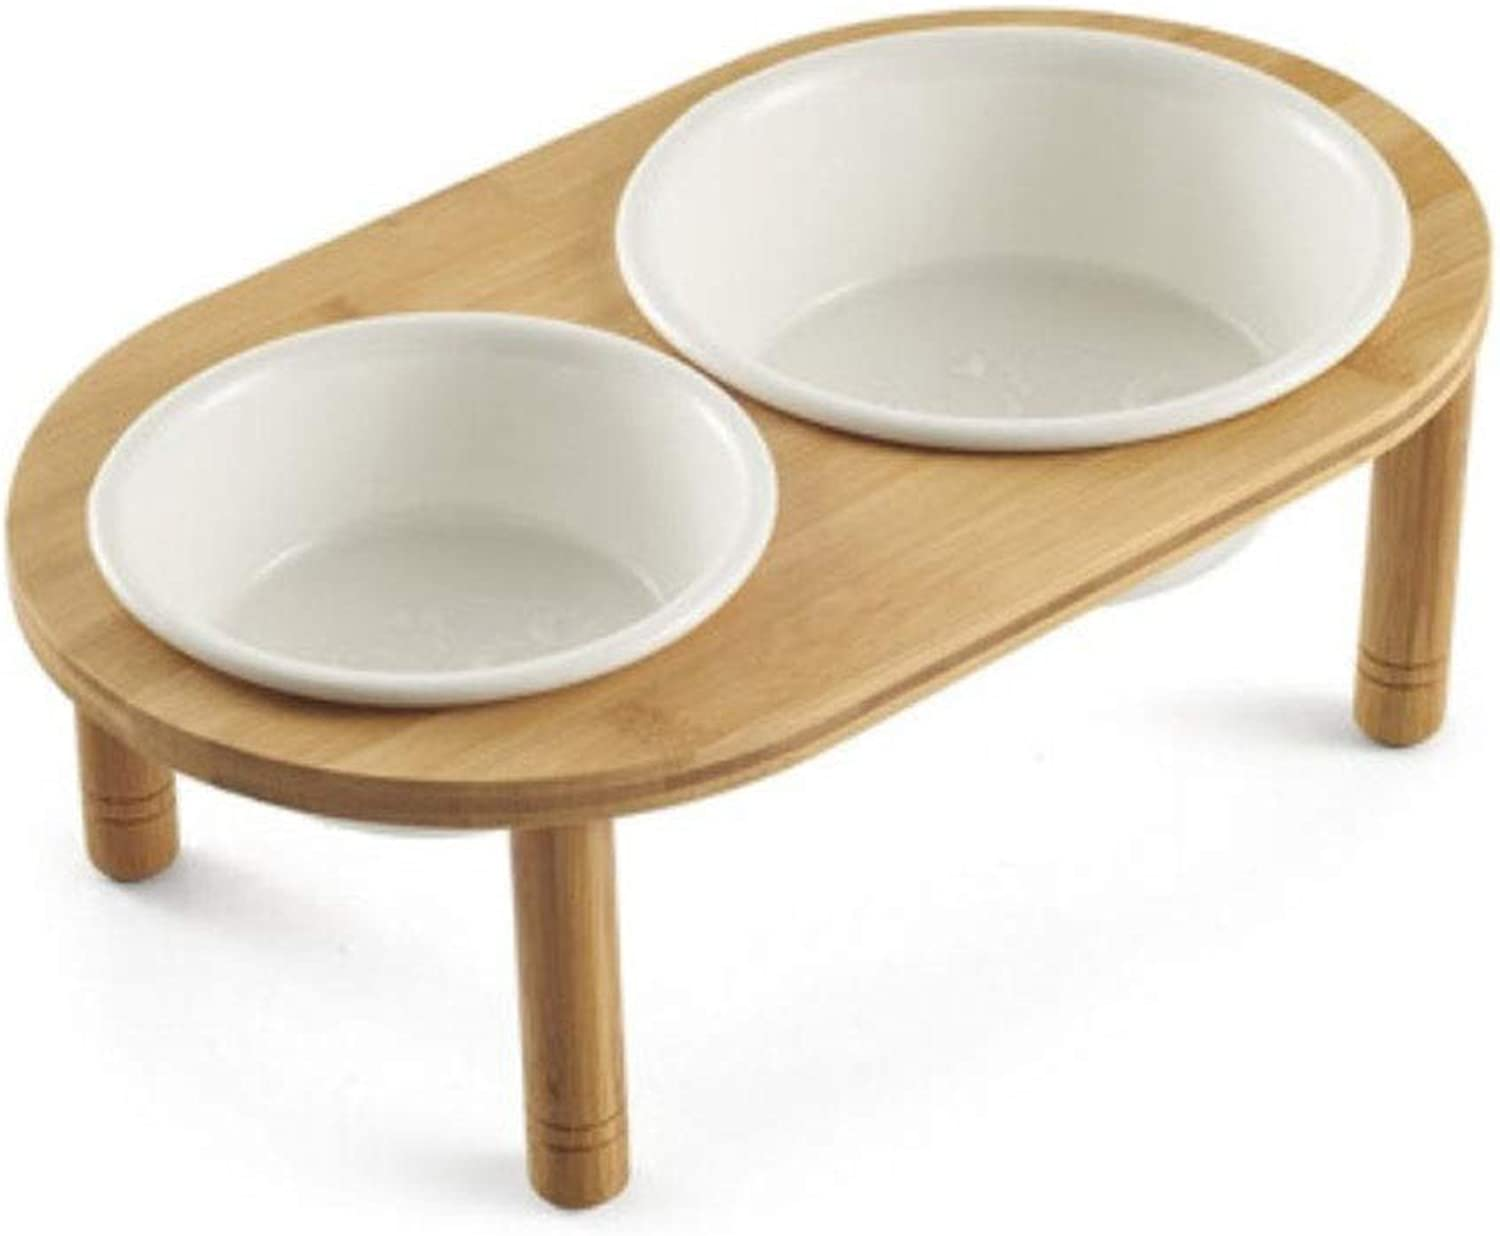 Ceramic Dog Cat Food Pet Bowl with Elevated Stand Feeder Desk,Wood Dish Rack Feeding Stations,a Large and a Small Bowl for Dry or Wet Food and Water